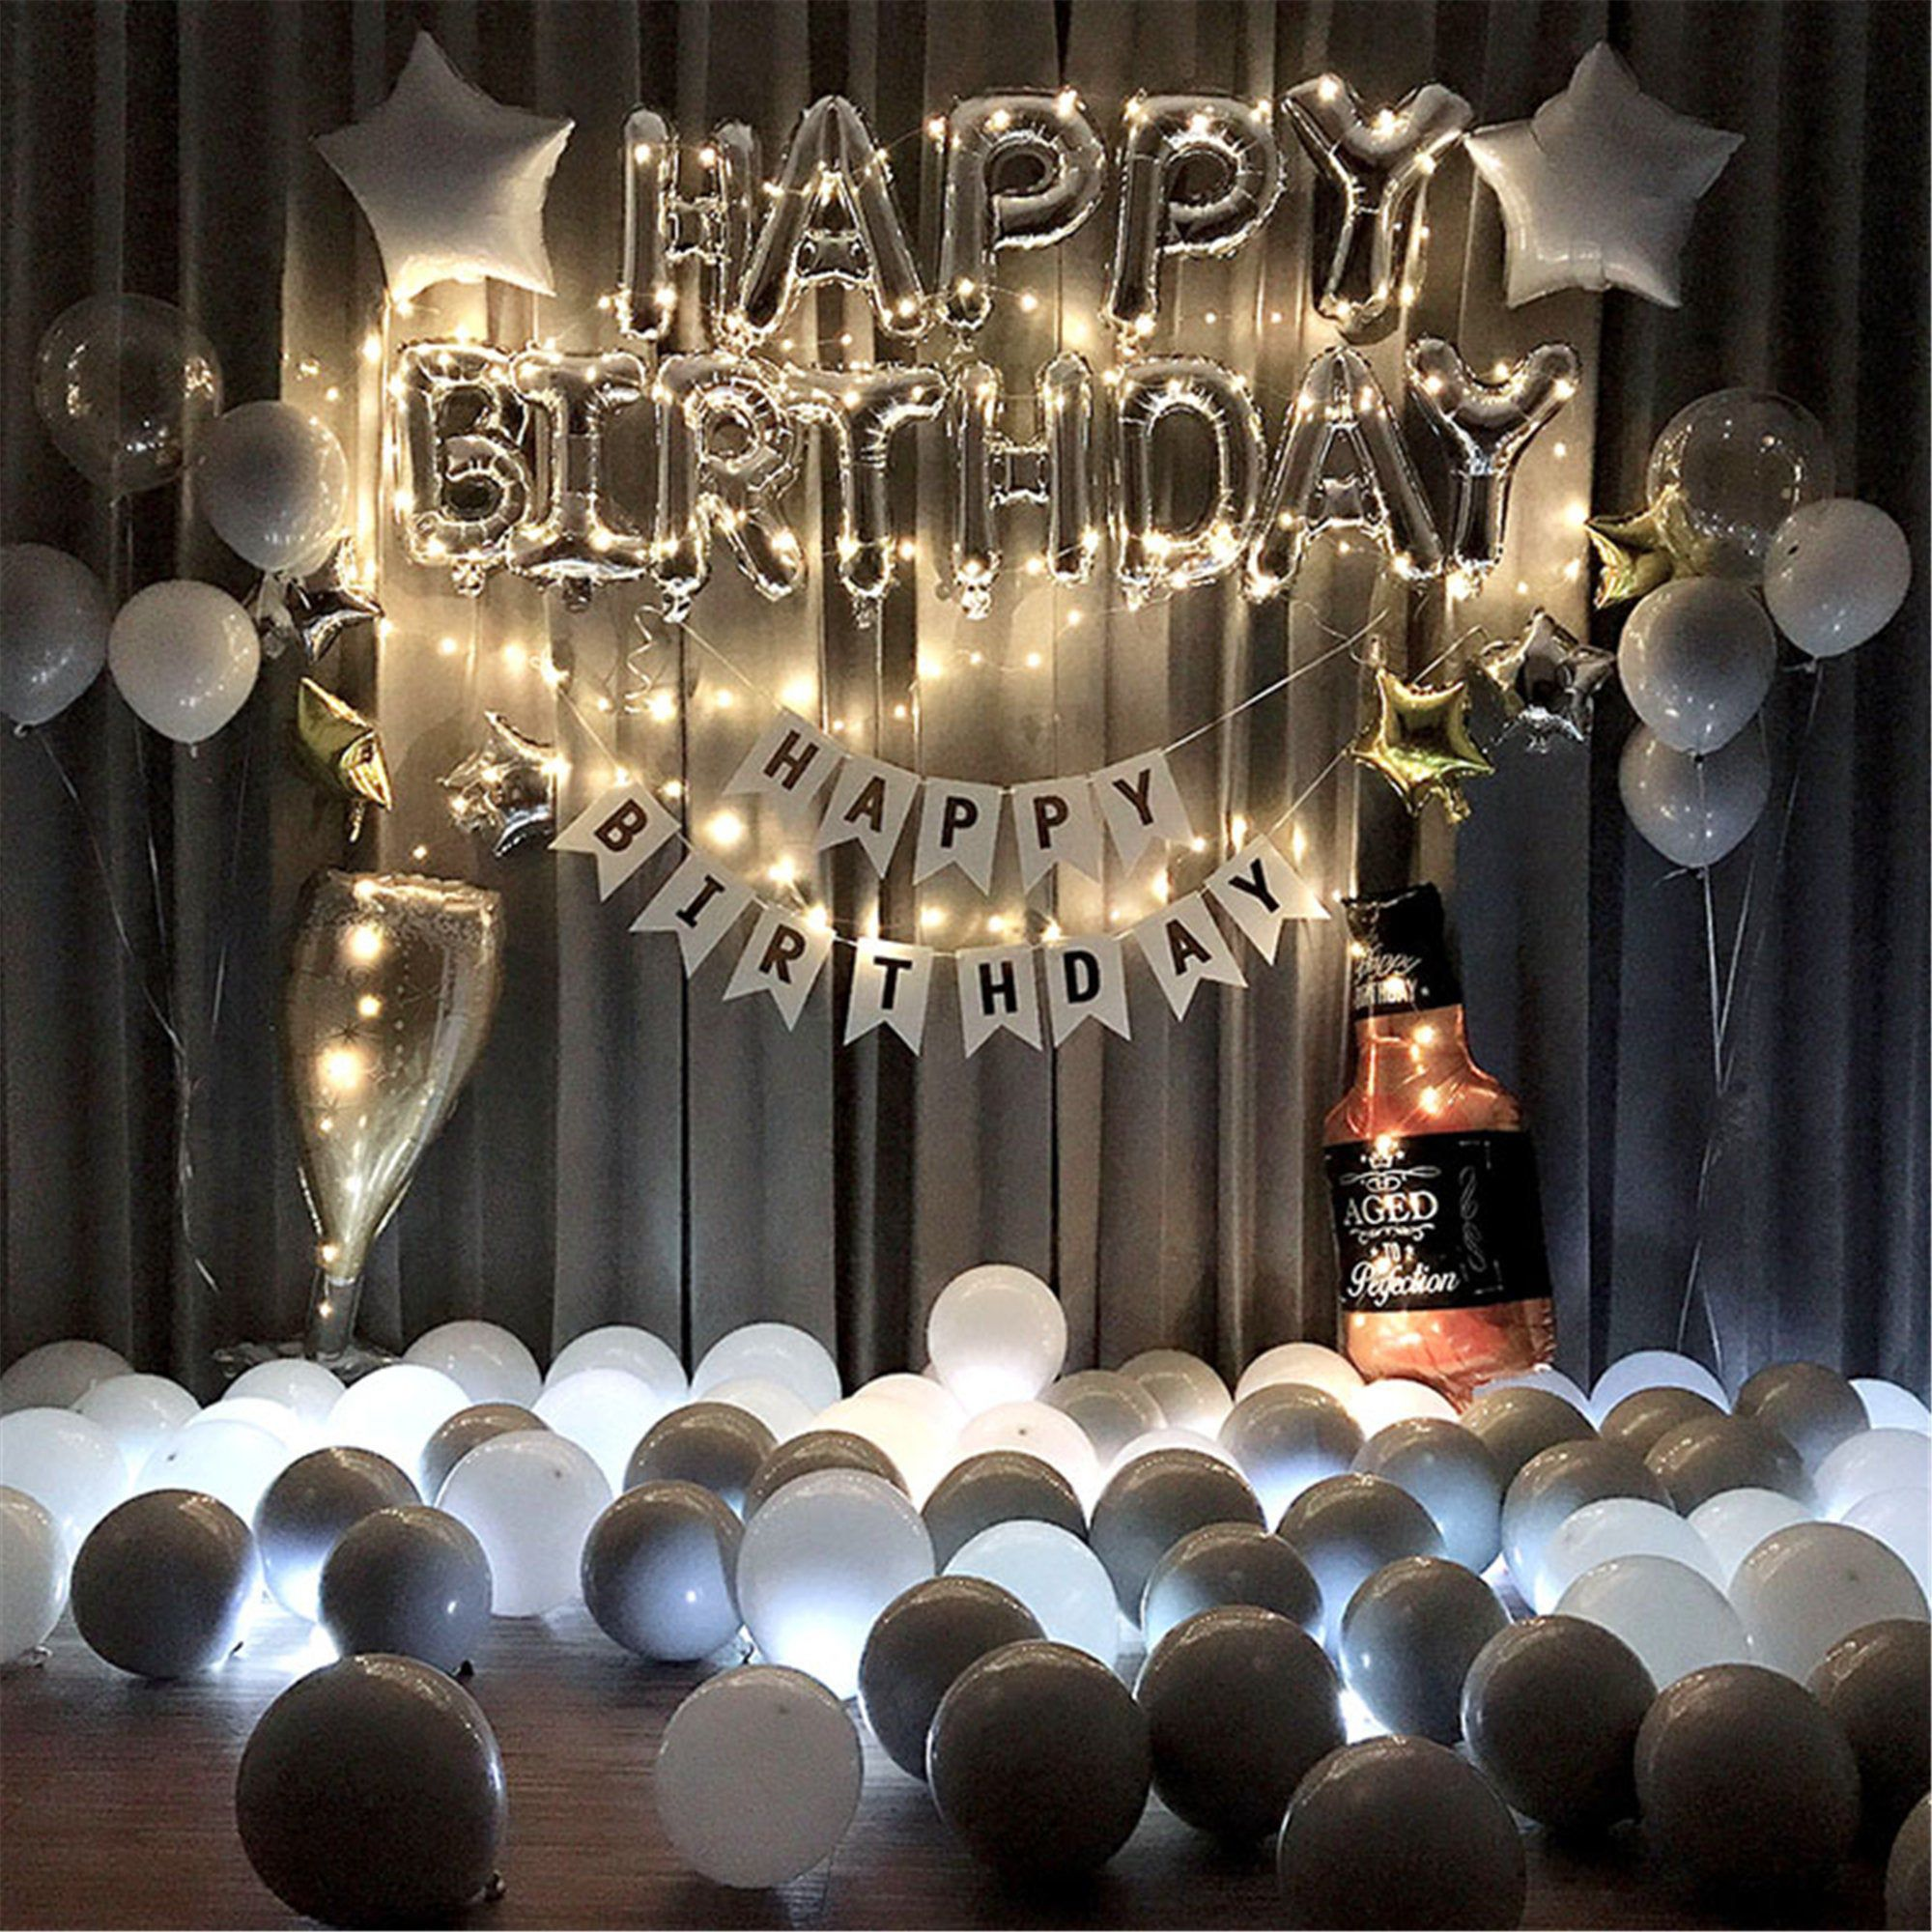 Birthday Balloon Kit, Birthday&Wedding Decorations, Baby Shower Decorations, Birthday Party Balloons, Hen Party Decorations, Party Backdrop #50thbirthdaypartydecorations